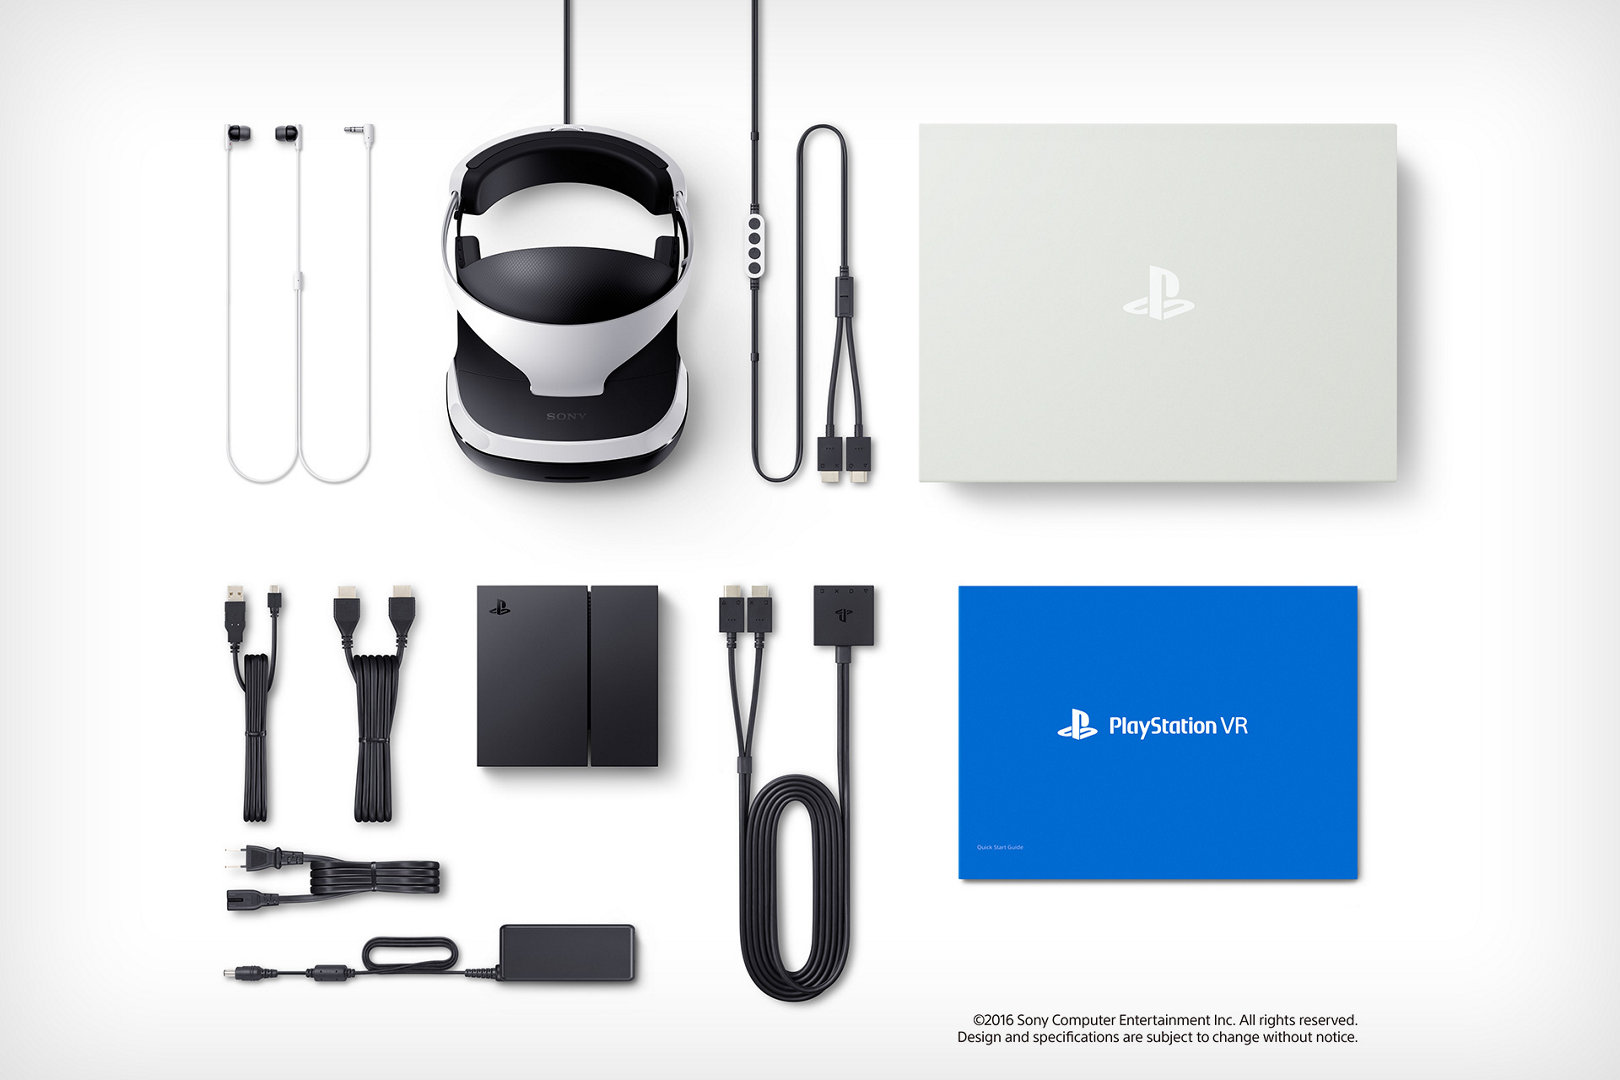 ps-vr-product-shots-screen-14-ps4-eu-14oct16